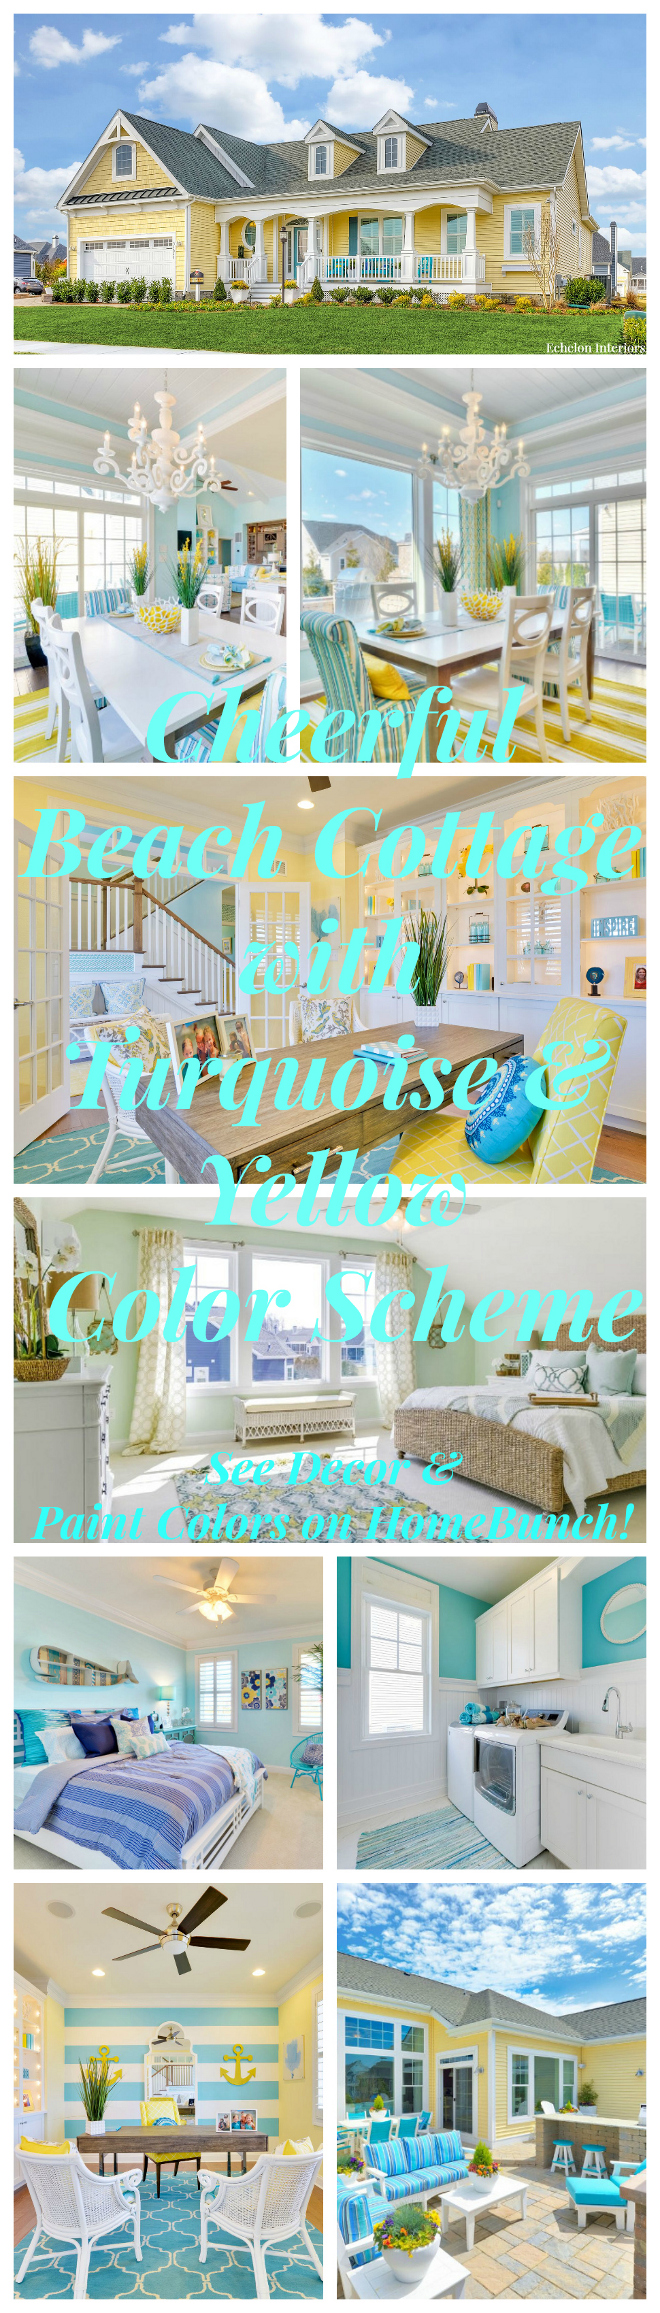 Cheerful Beach Cottage with Turquoise Color Scheme. Cheerful Beach Cottage with Turquoise Color Scheme ideas. See paint colors and decor sources on Home Bunch #CheerfulBeachCottage #Turquoise #ColorScheme Echelon Interiors